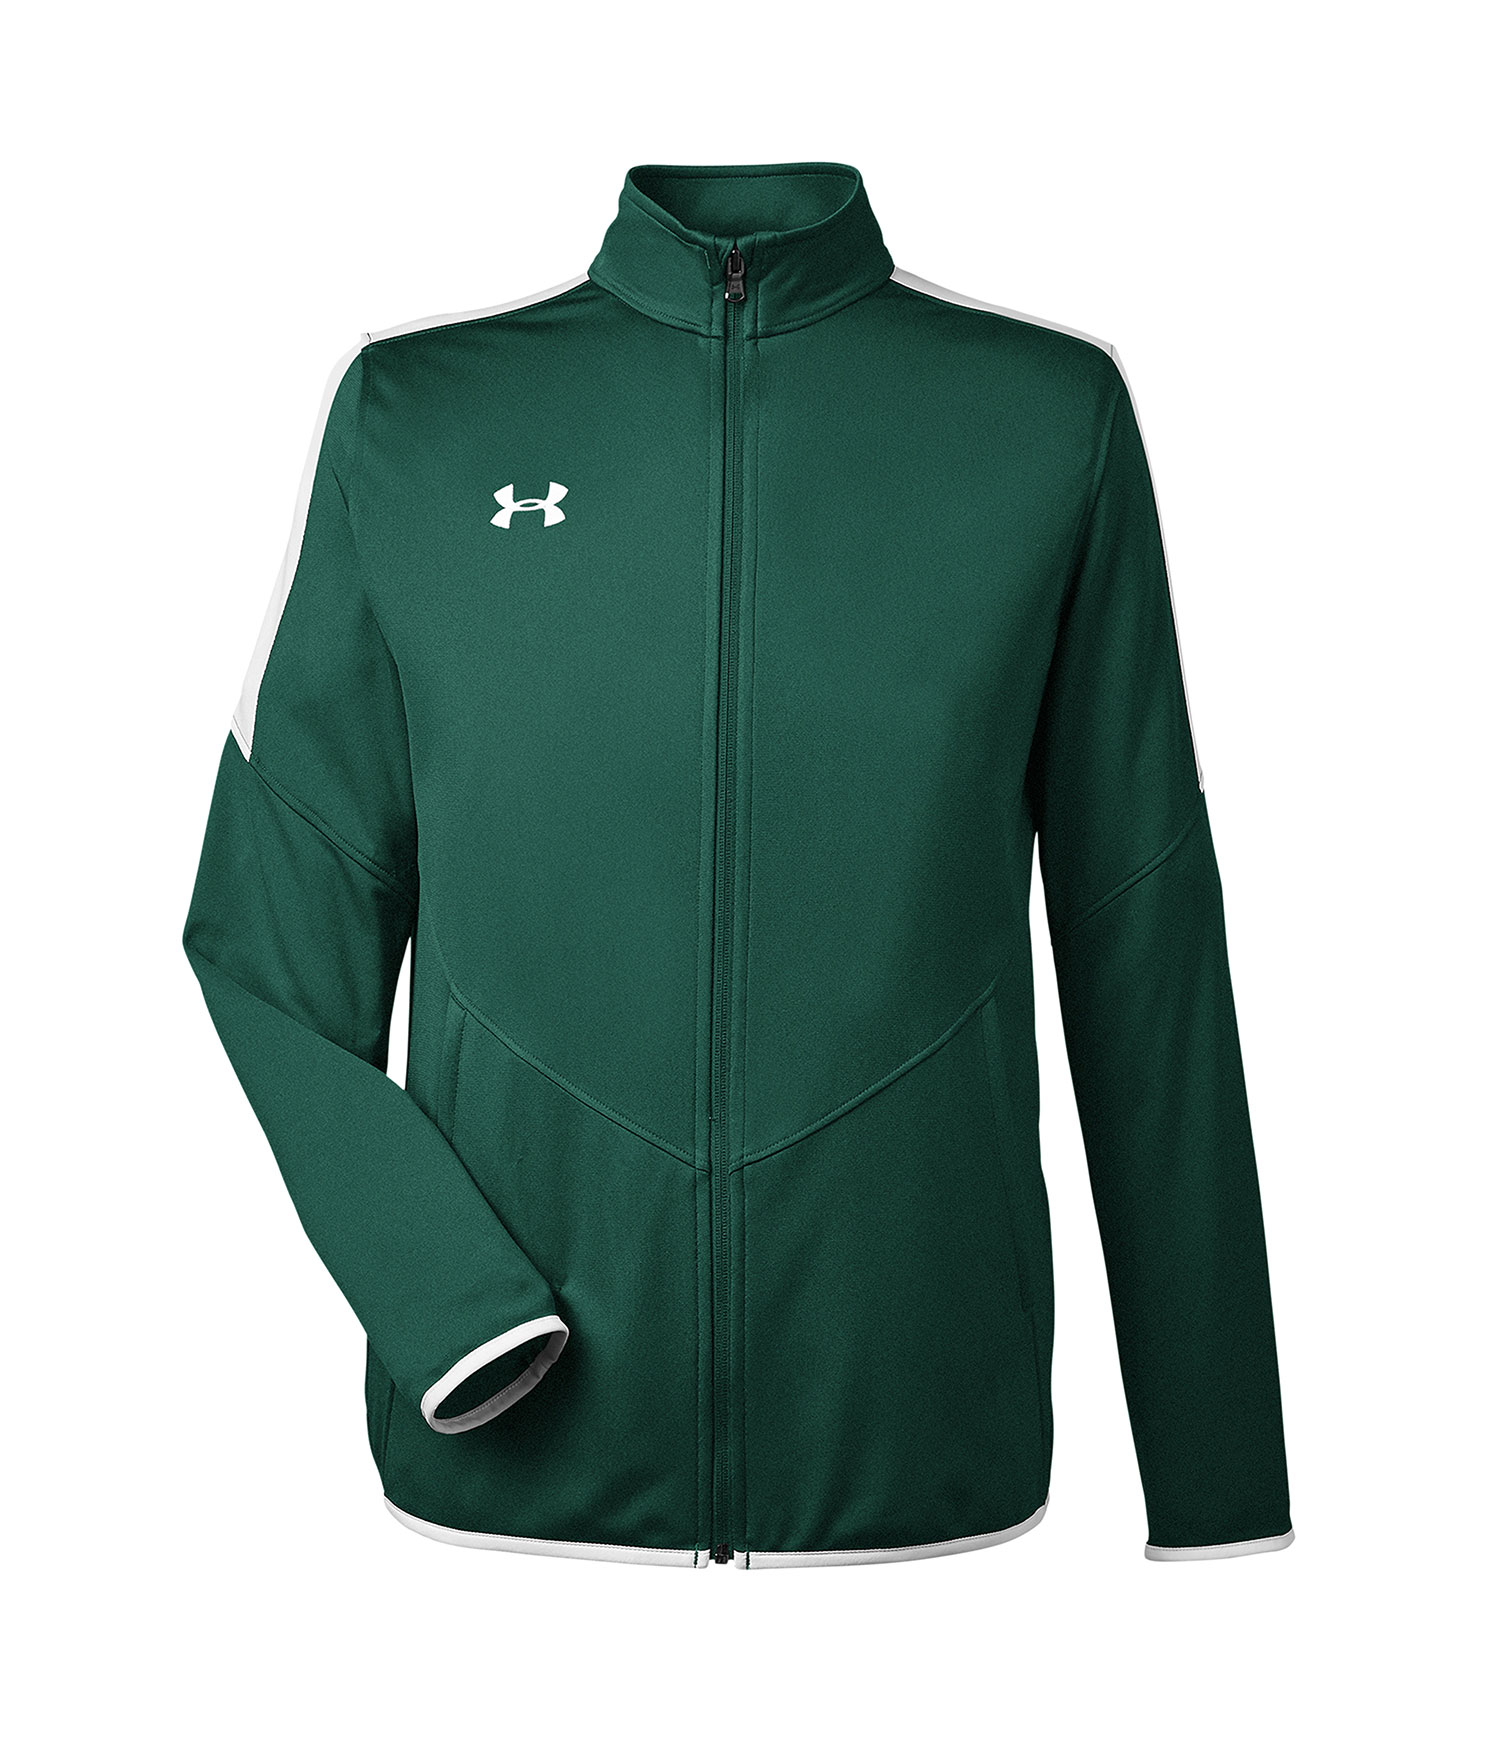 Under Armour Mens Rival Knit Jacket